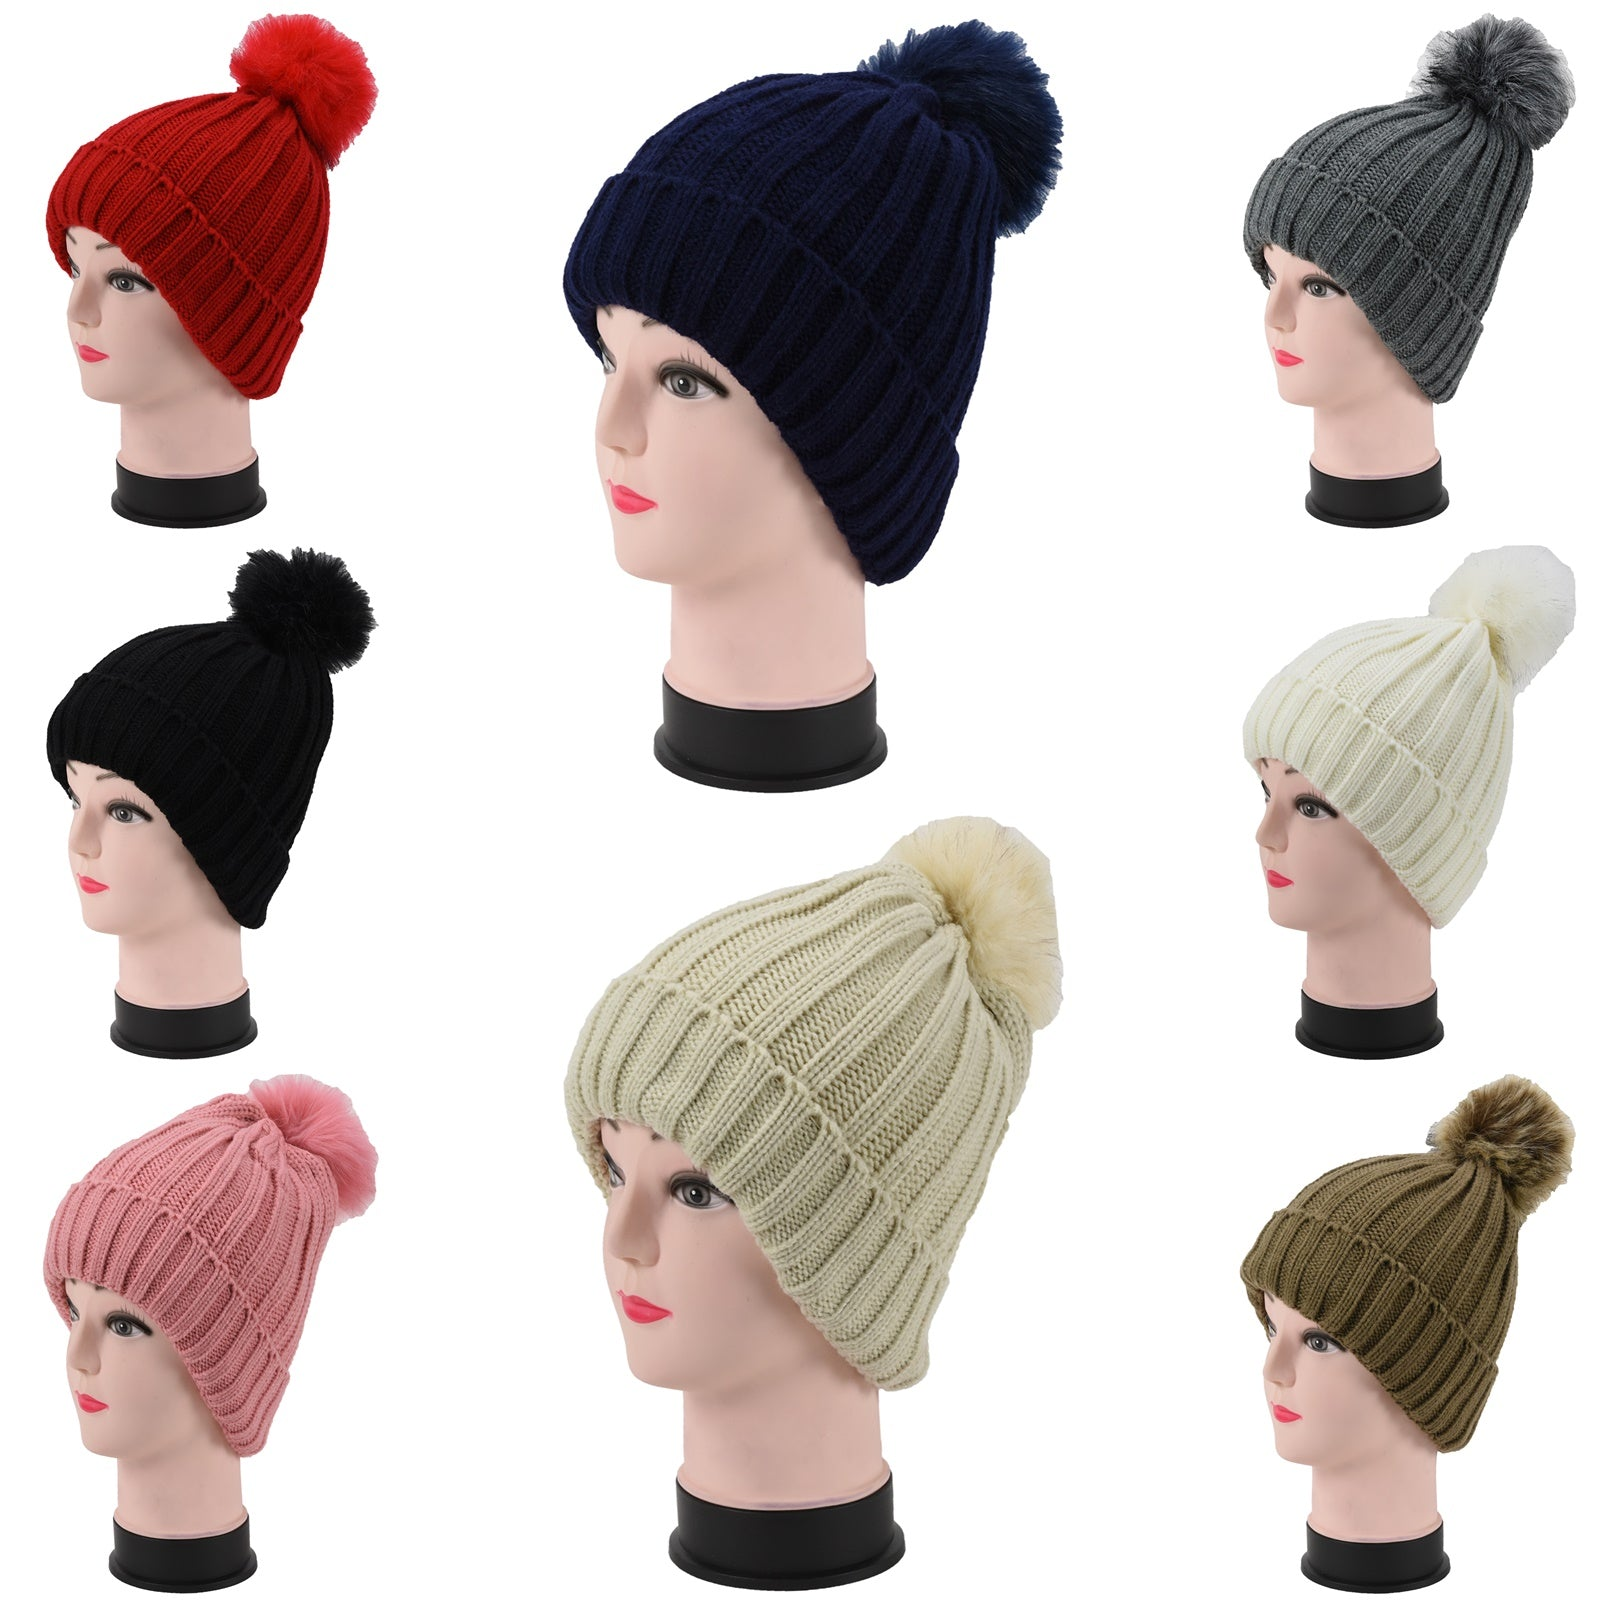 Wholesale Knit Beanie Cuffed Long Hats W Fur Pom H53096 - OPT FASHION  WHOLESALE 3de66130ff1